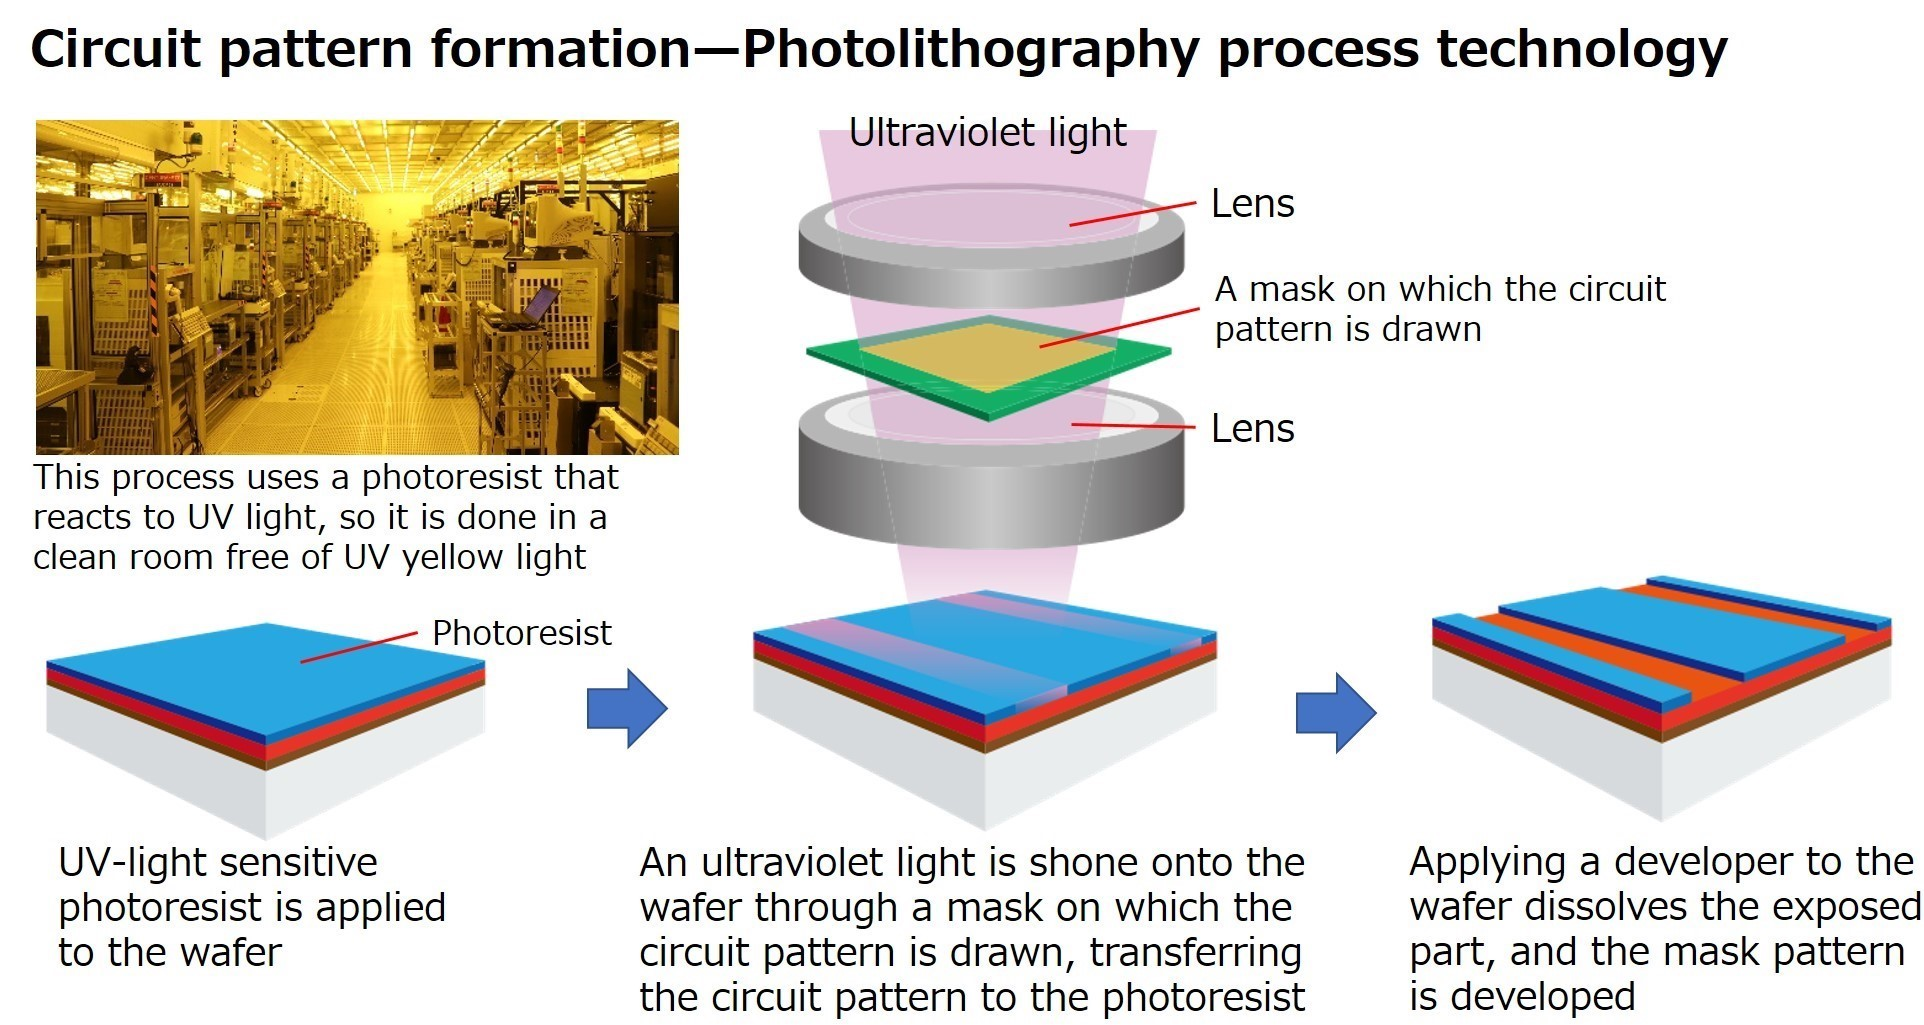 Circuit pattern formation—Photolithography process technology